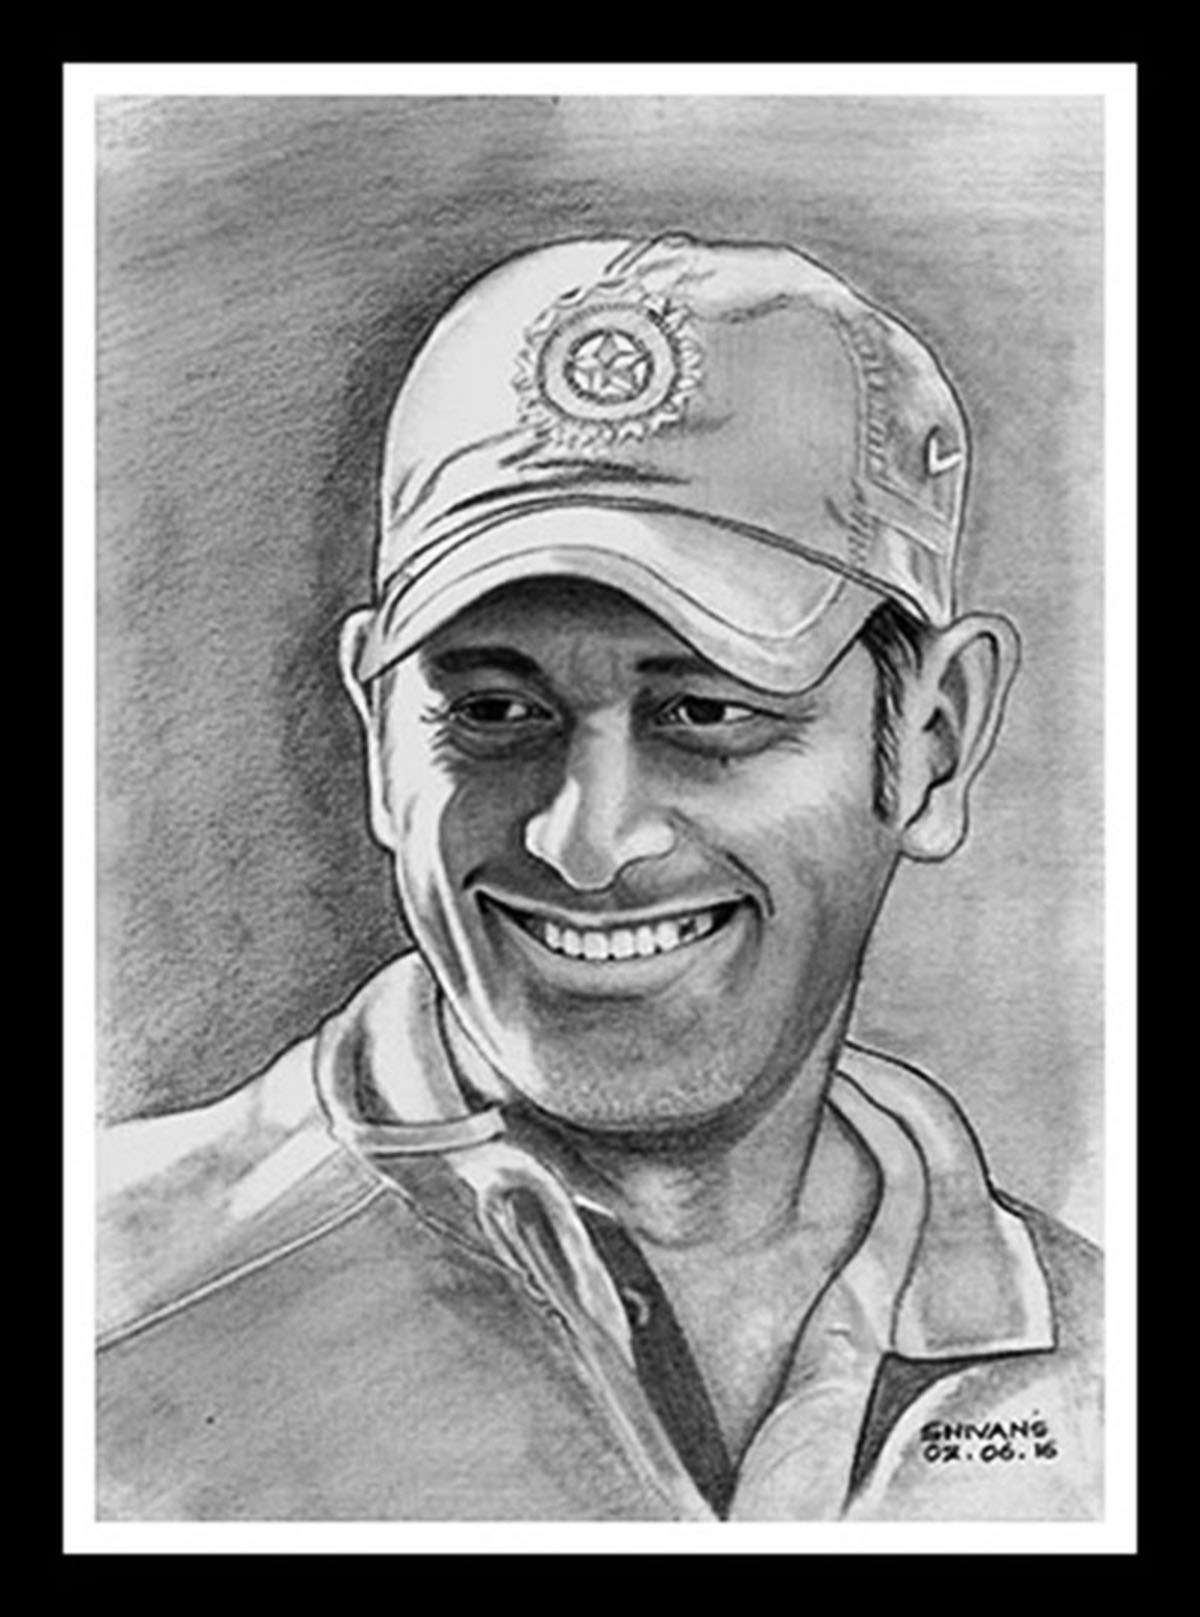 Indian Cricketer M.S. Dhoni 12666